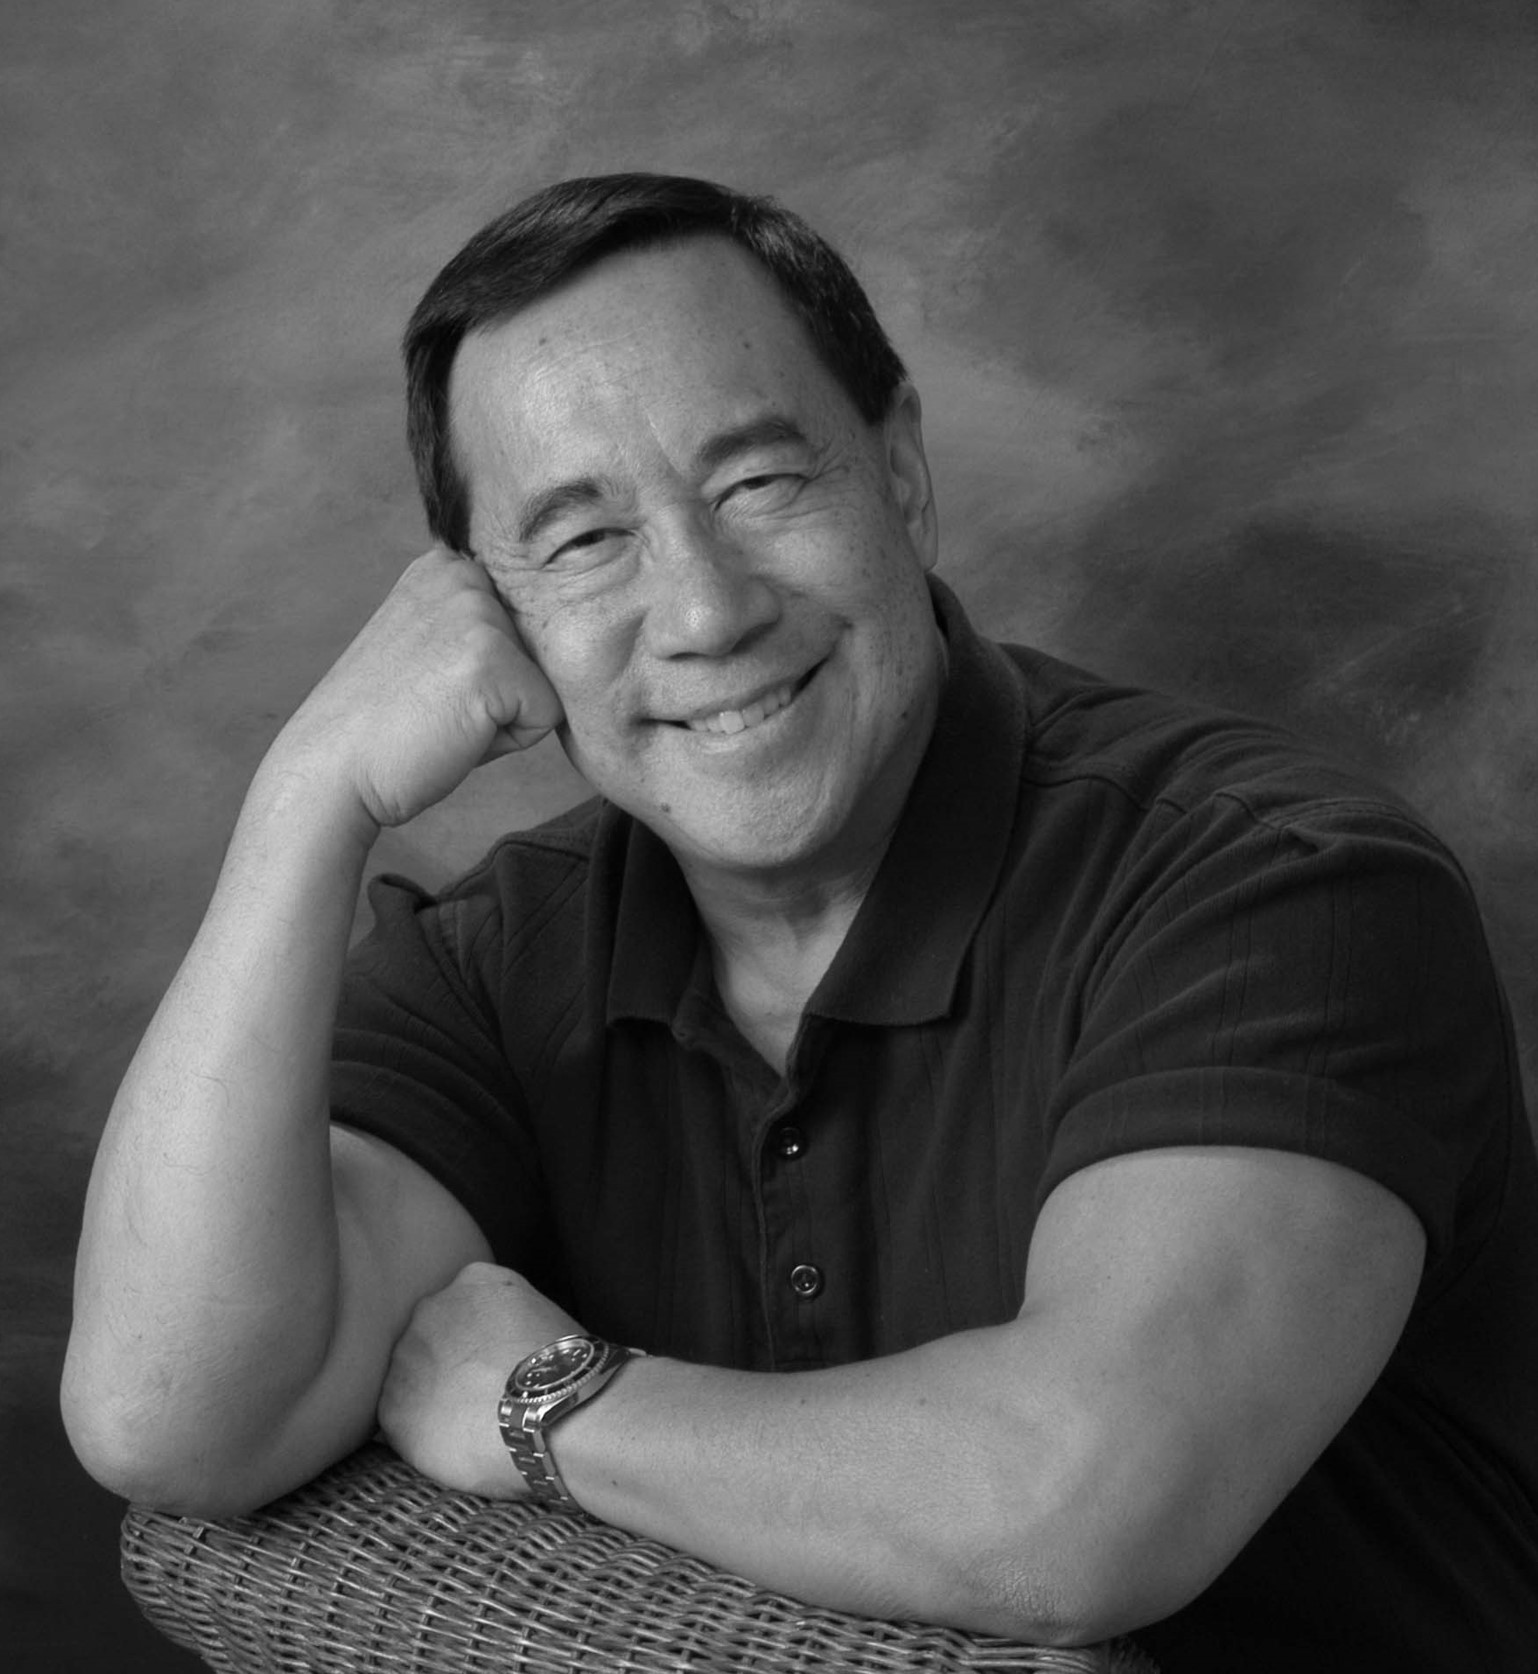 author profile gus lee in notable asian americans bookdragon gus lee one time attorney now full time writer began his first book in 1989 as a private memoir my daughter asked me to write a family journal and it